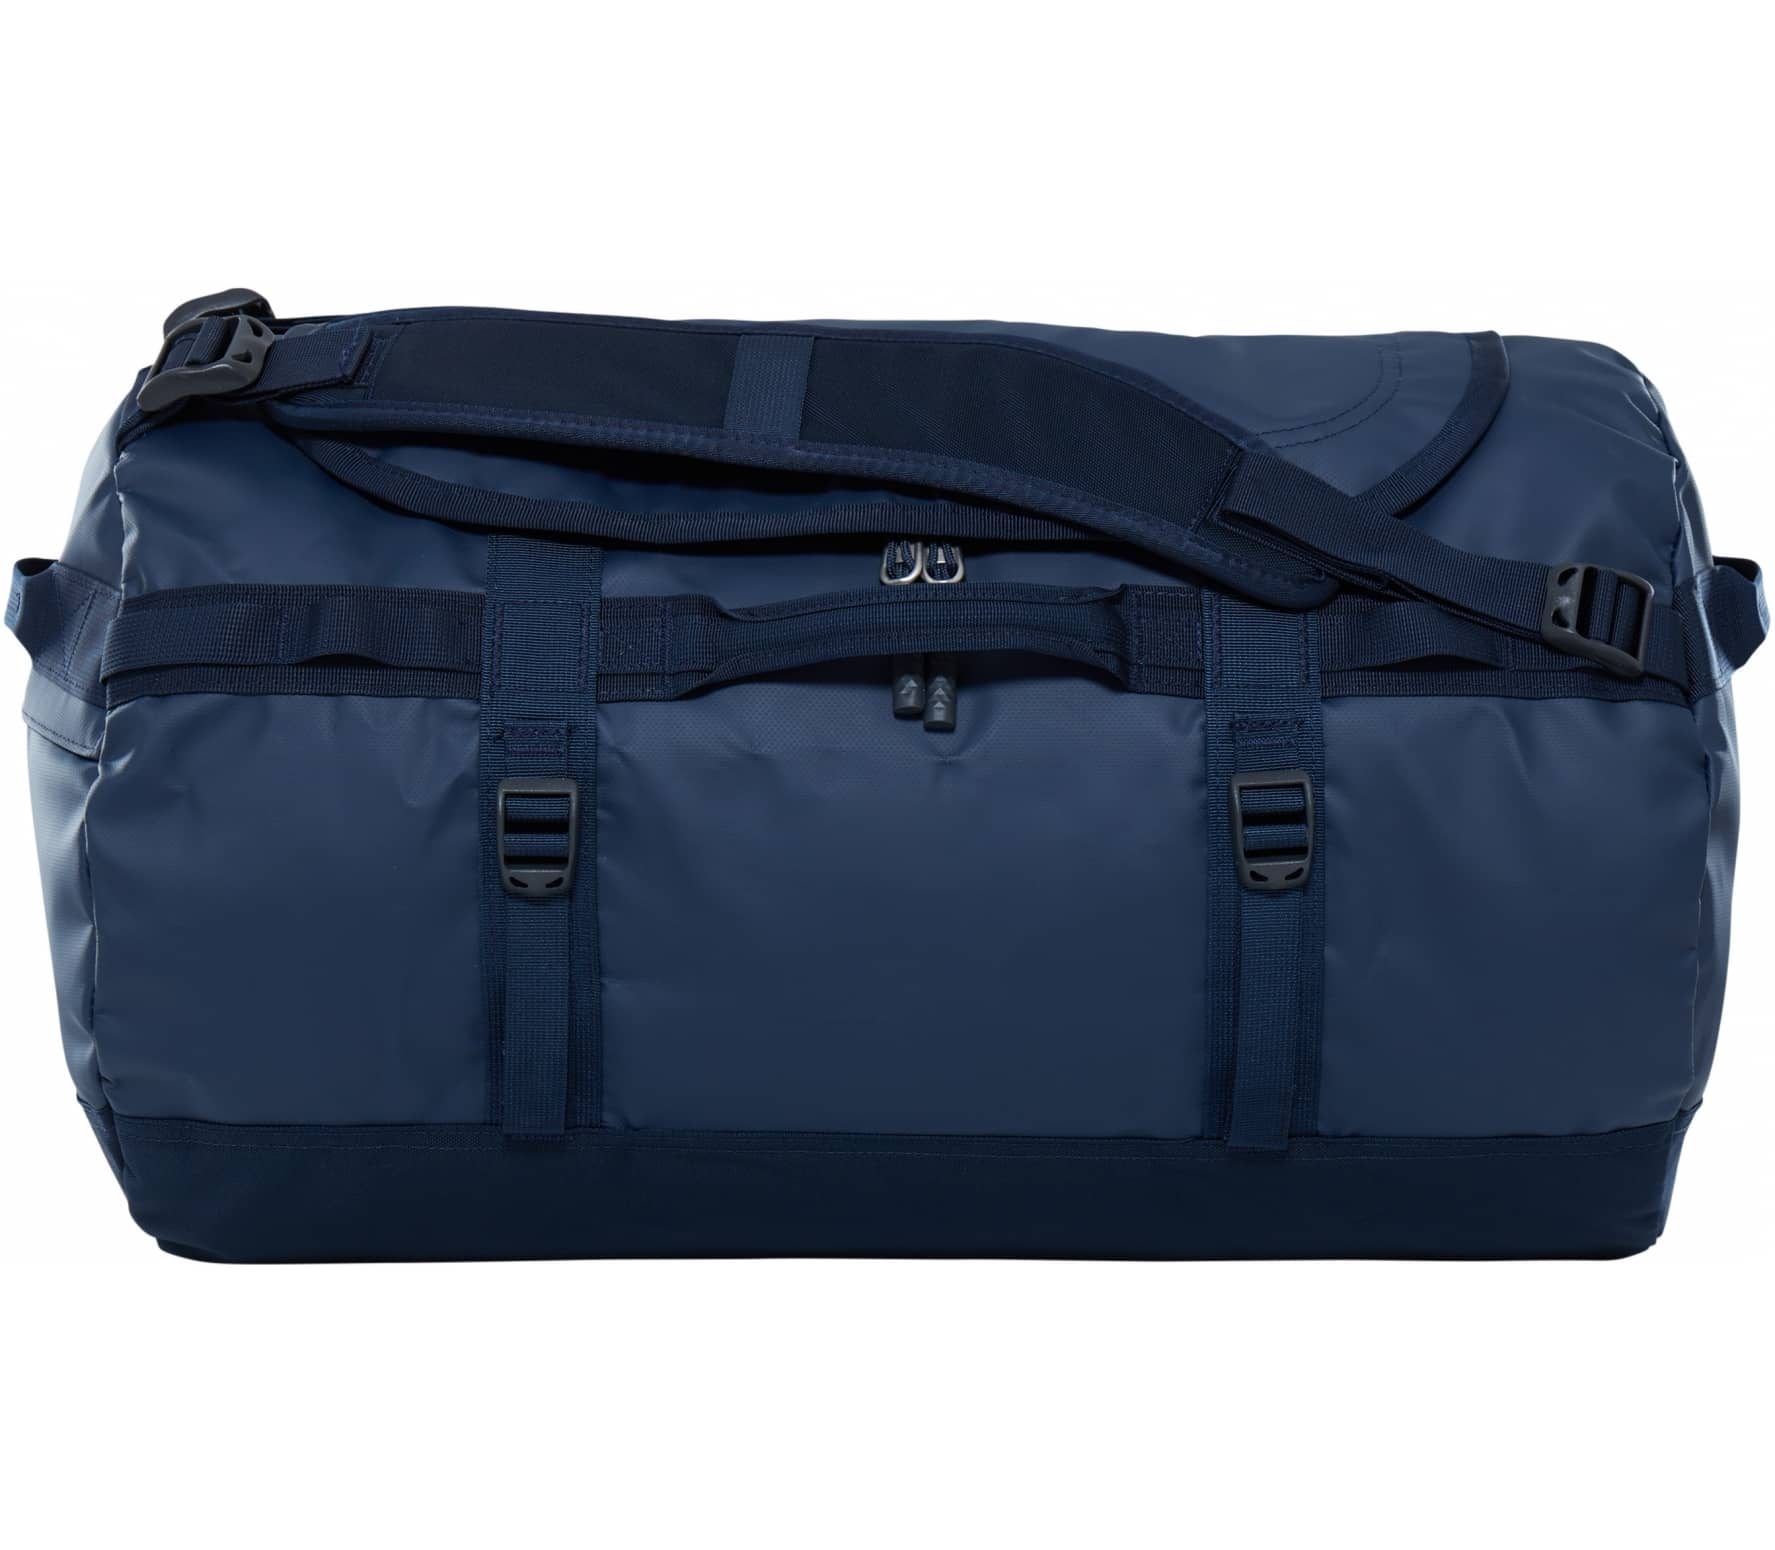 The North Face - Base Camp - S Unisex duffel bag (dark blue) thumbnail